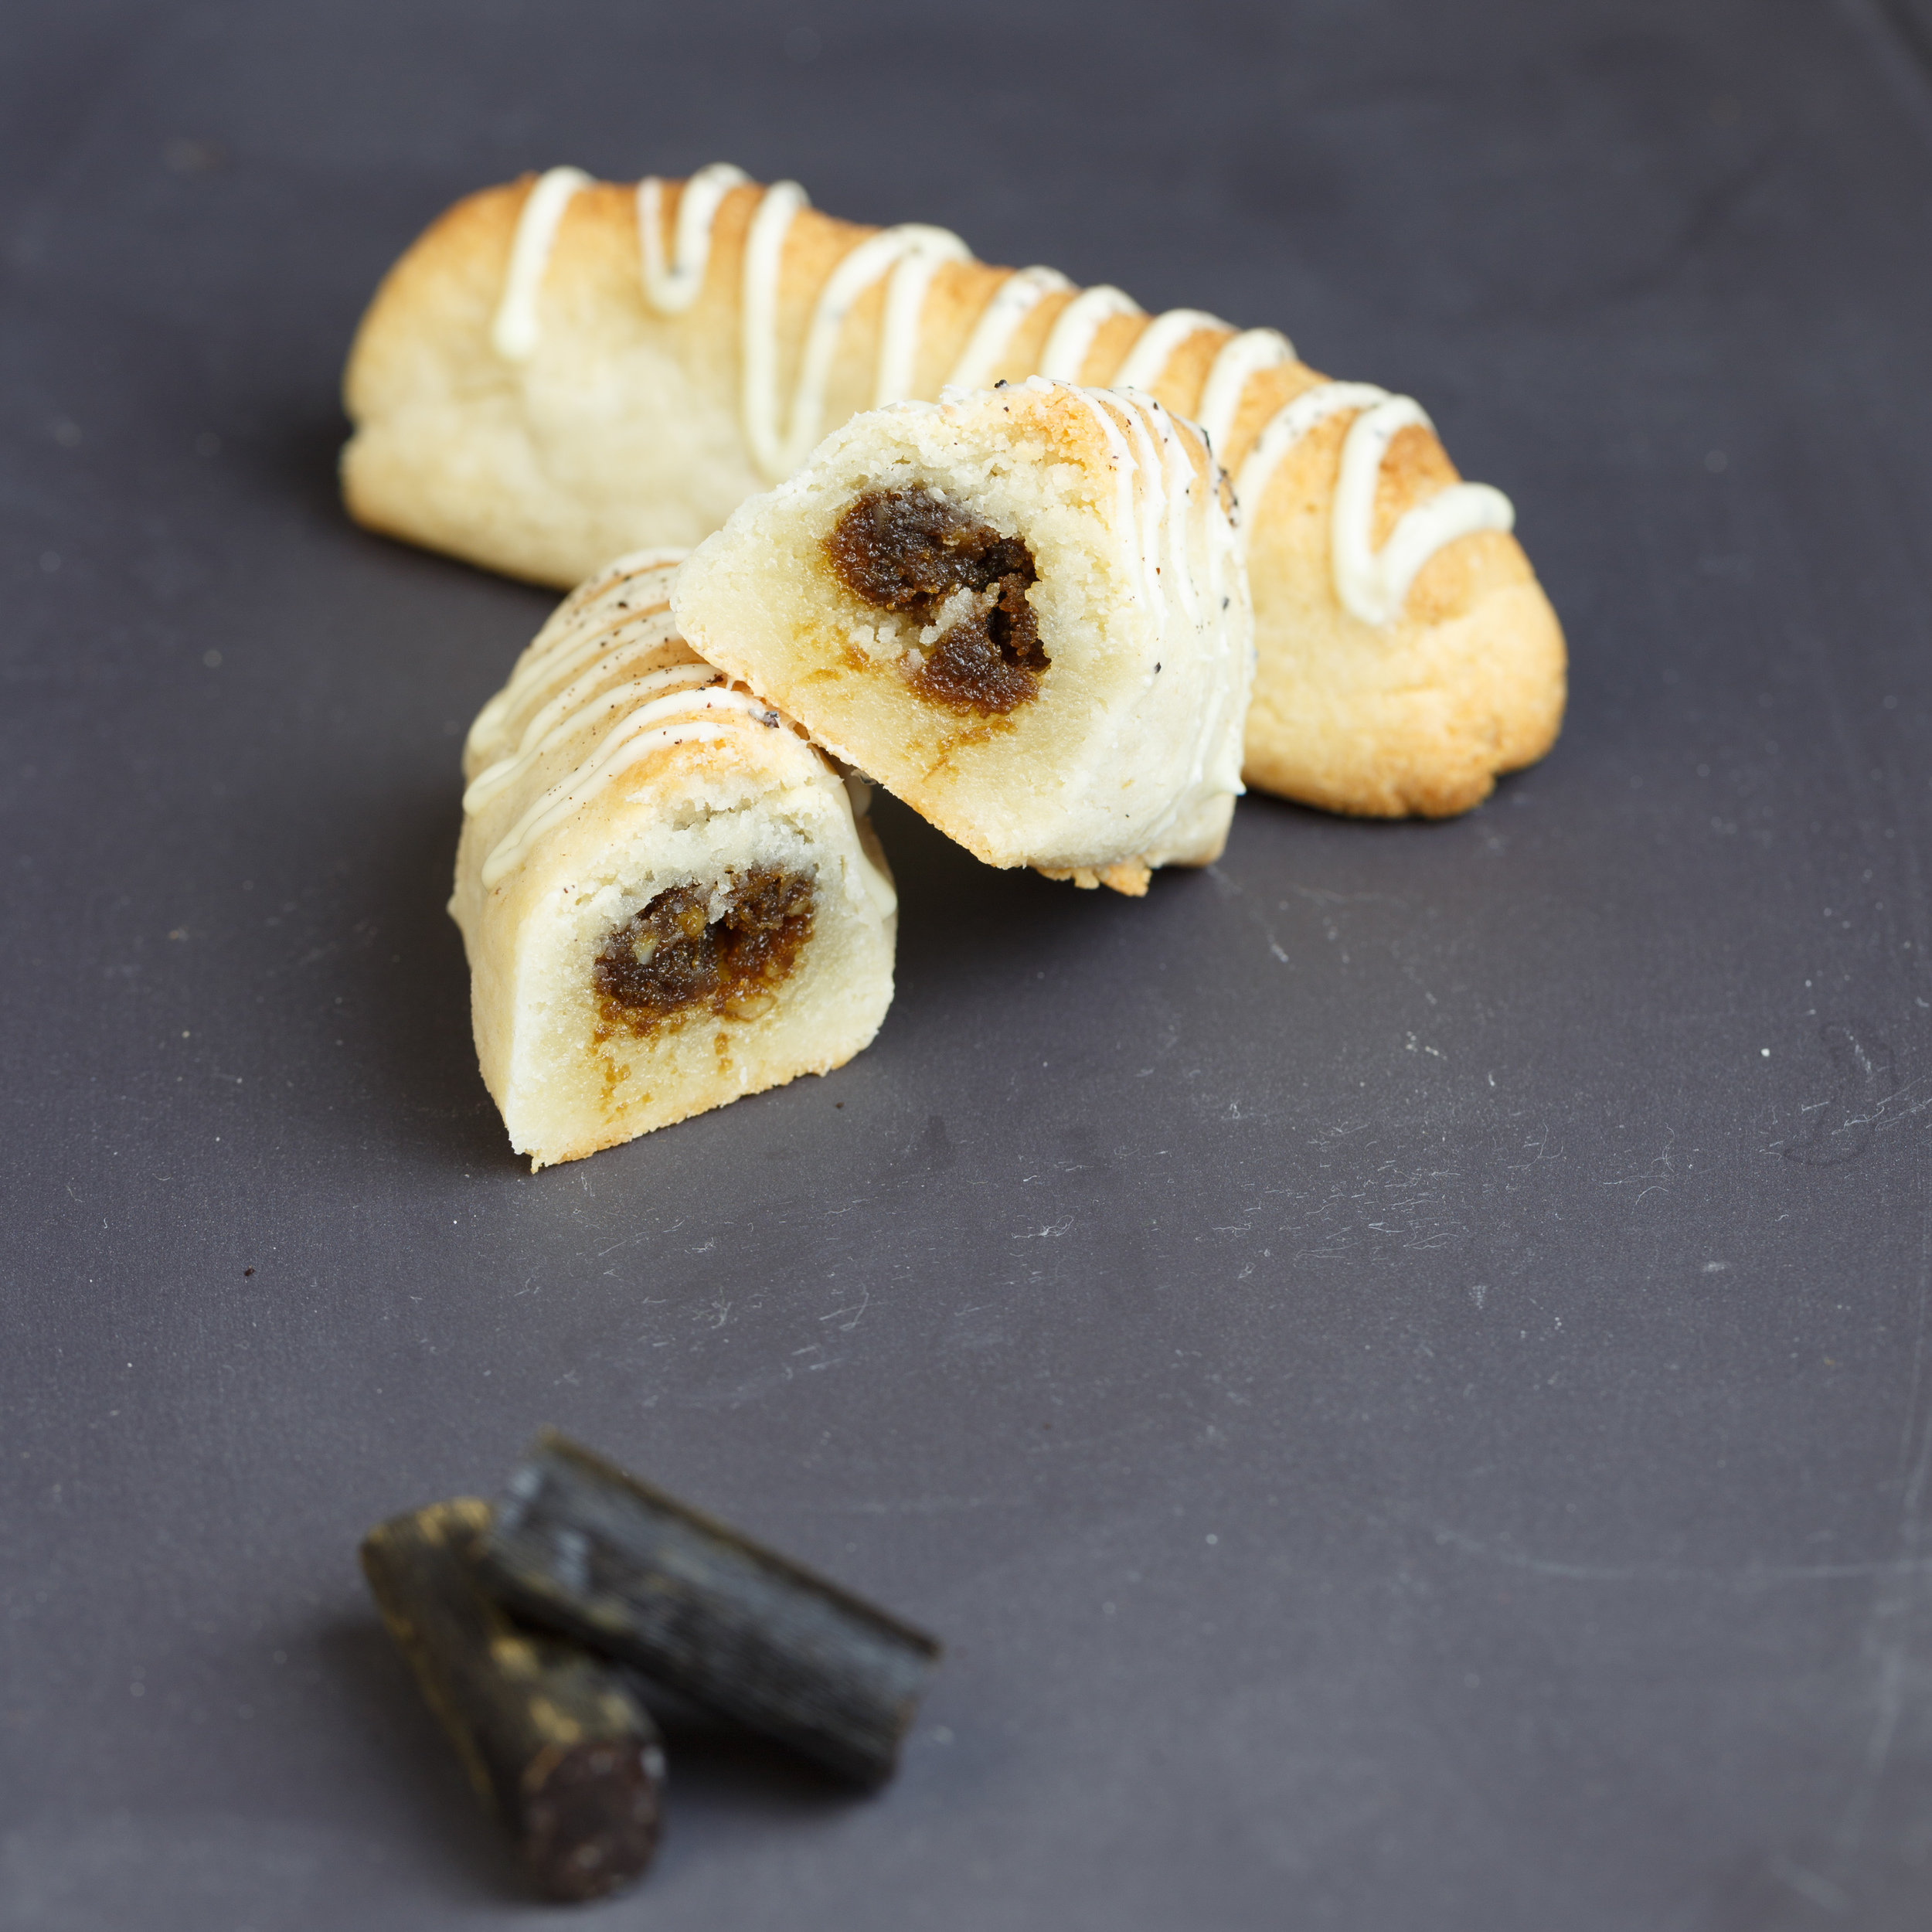 Kransekage with Liquorice